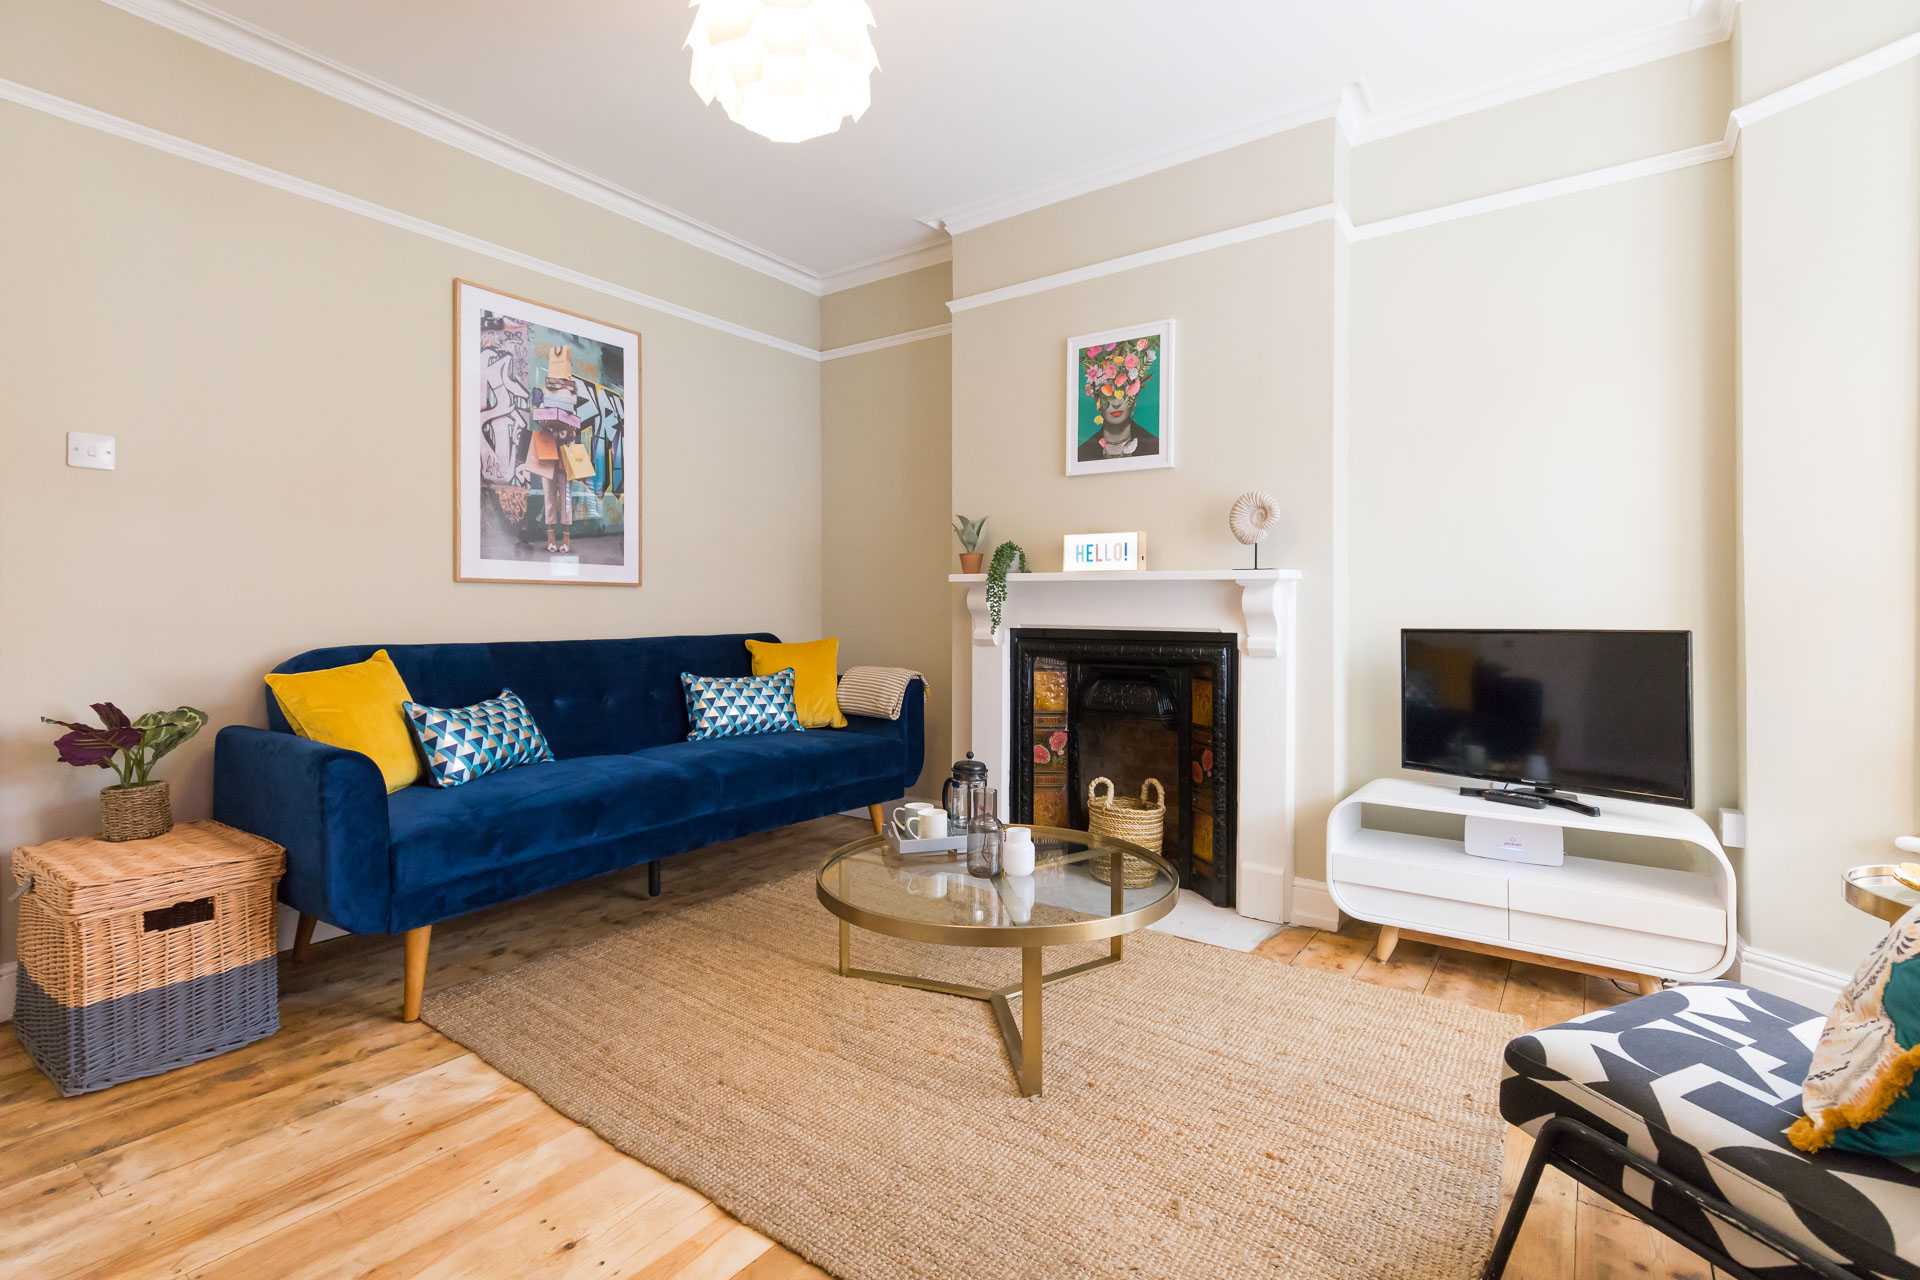 Living room with blue sofa and yellow pillows.